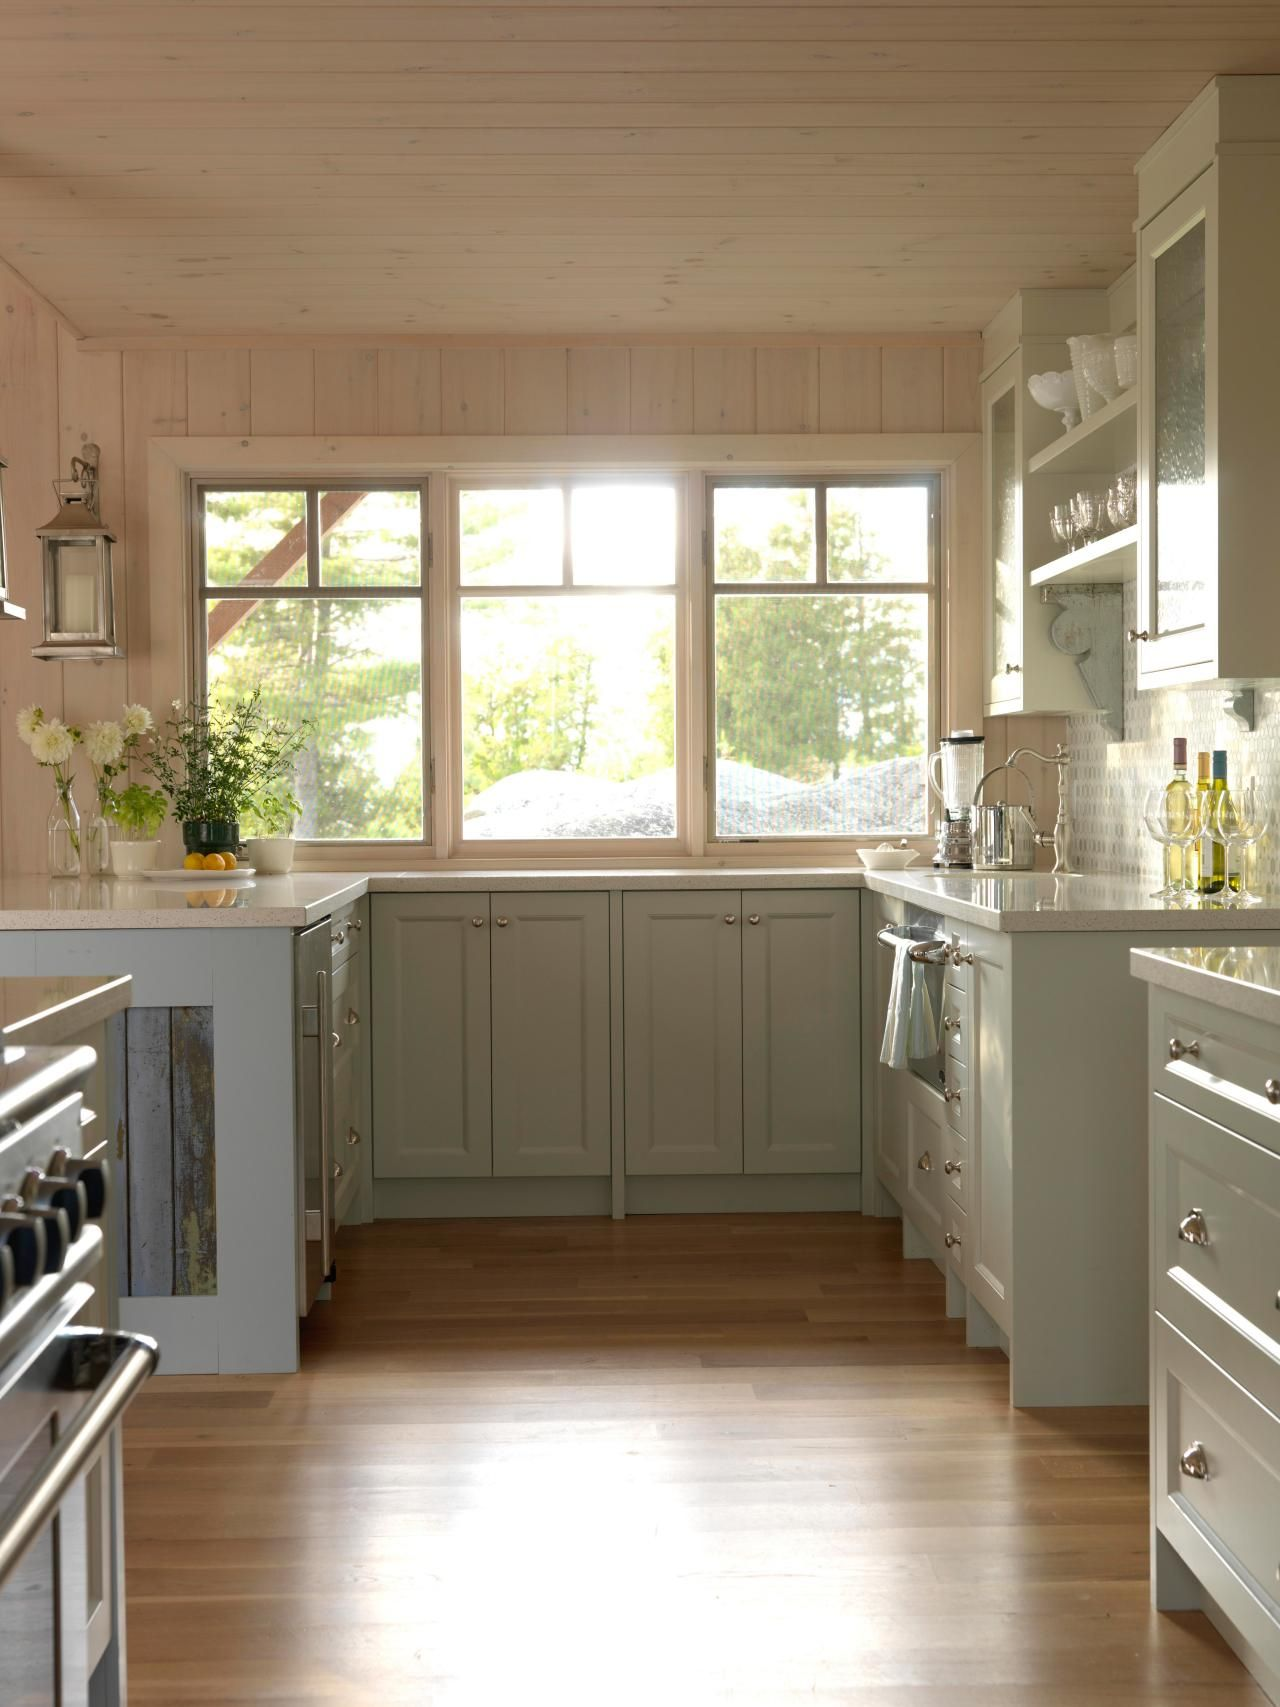 Large window kitchen designs  lovely light blue cabinets fill this cottage kitchen large windows